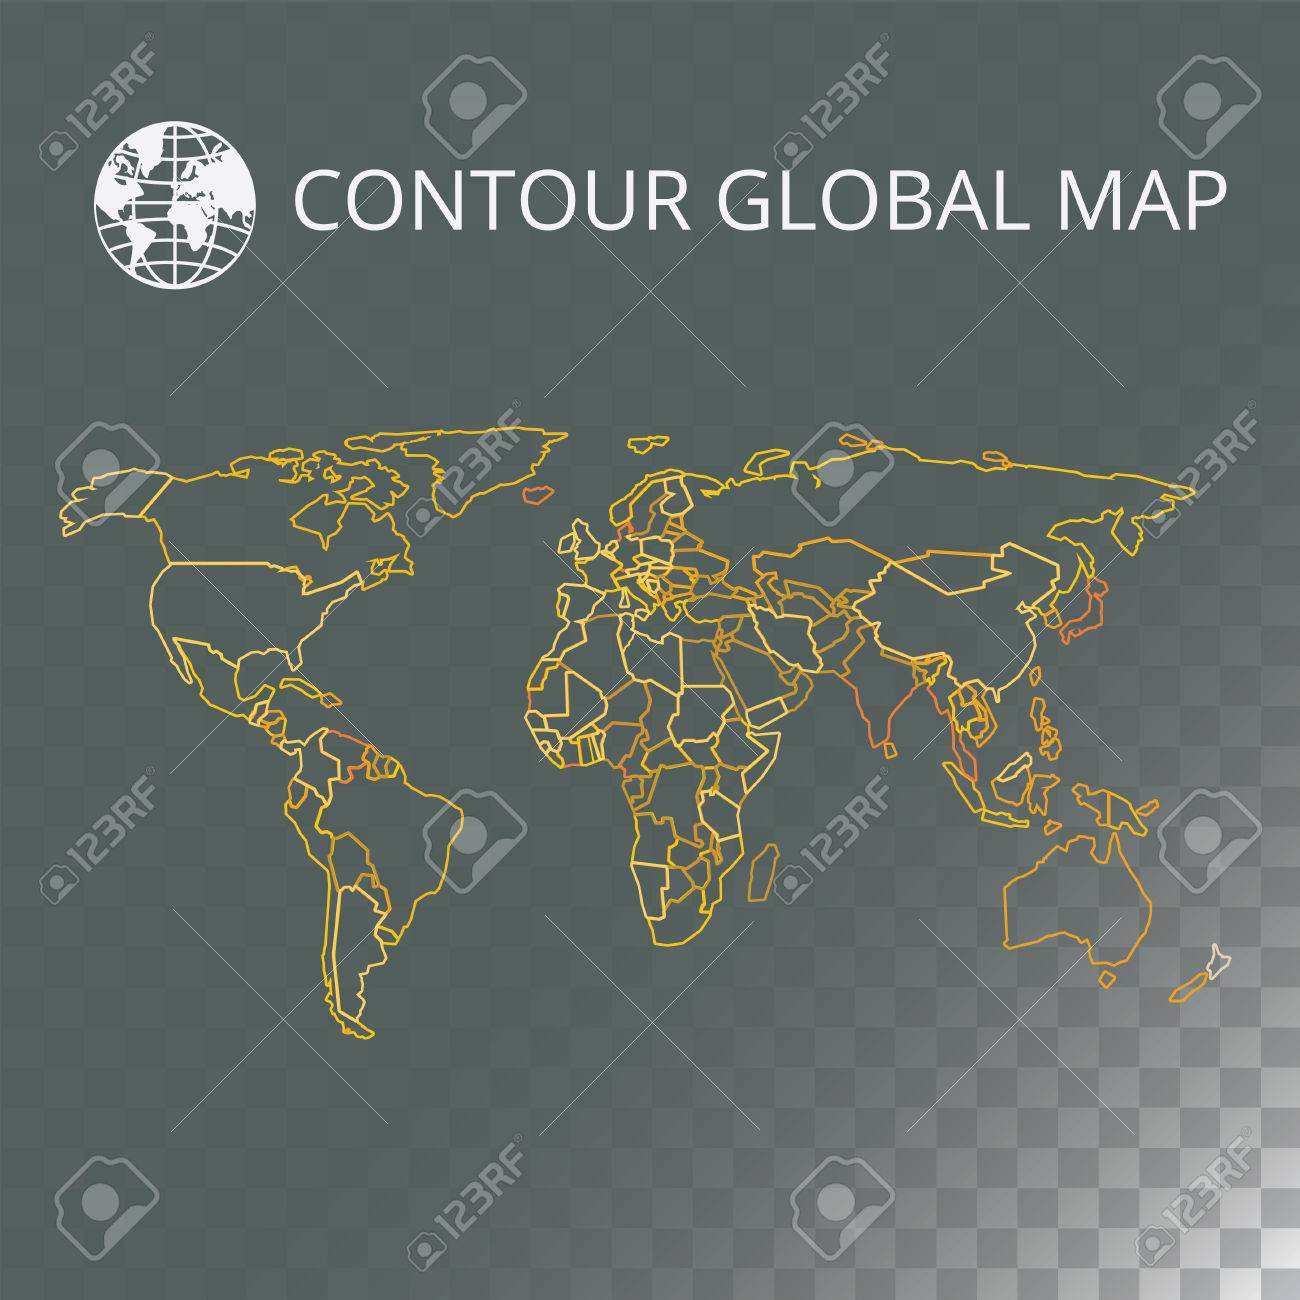 World map vector illustration high quality image in the style high quality image in the style of broken lines detail and continents of the world colour identification global map for your design or application gumiabroncs Images